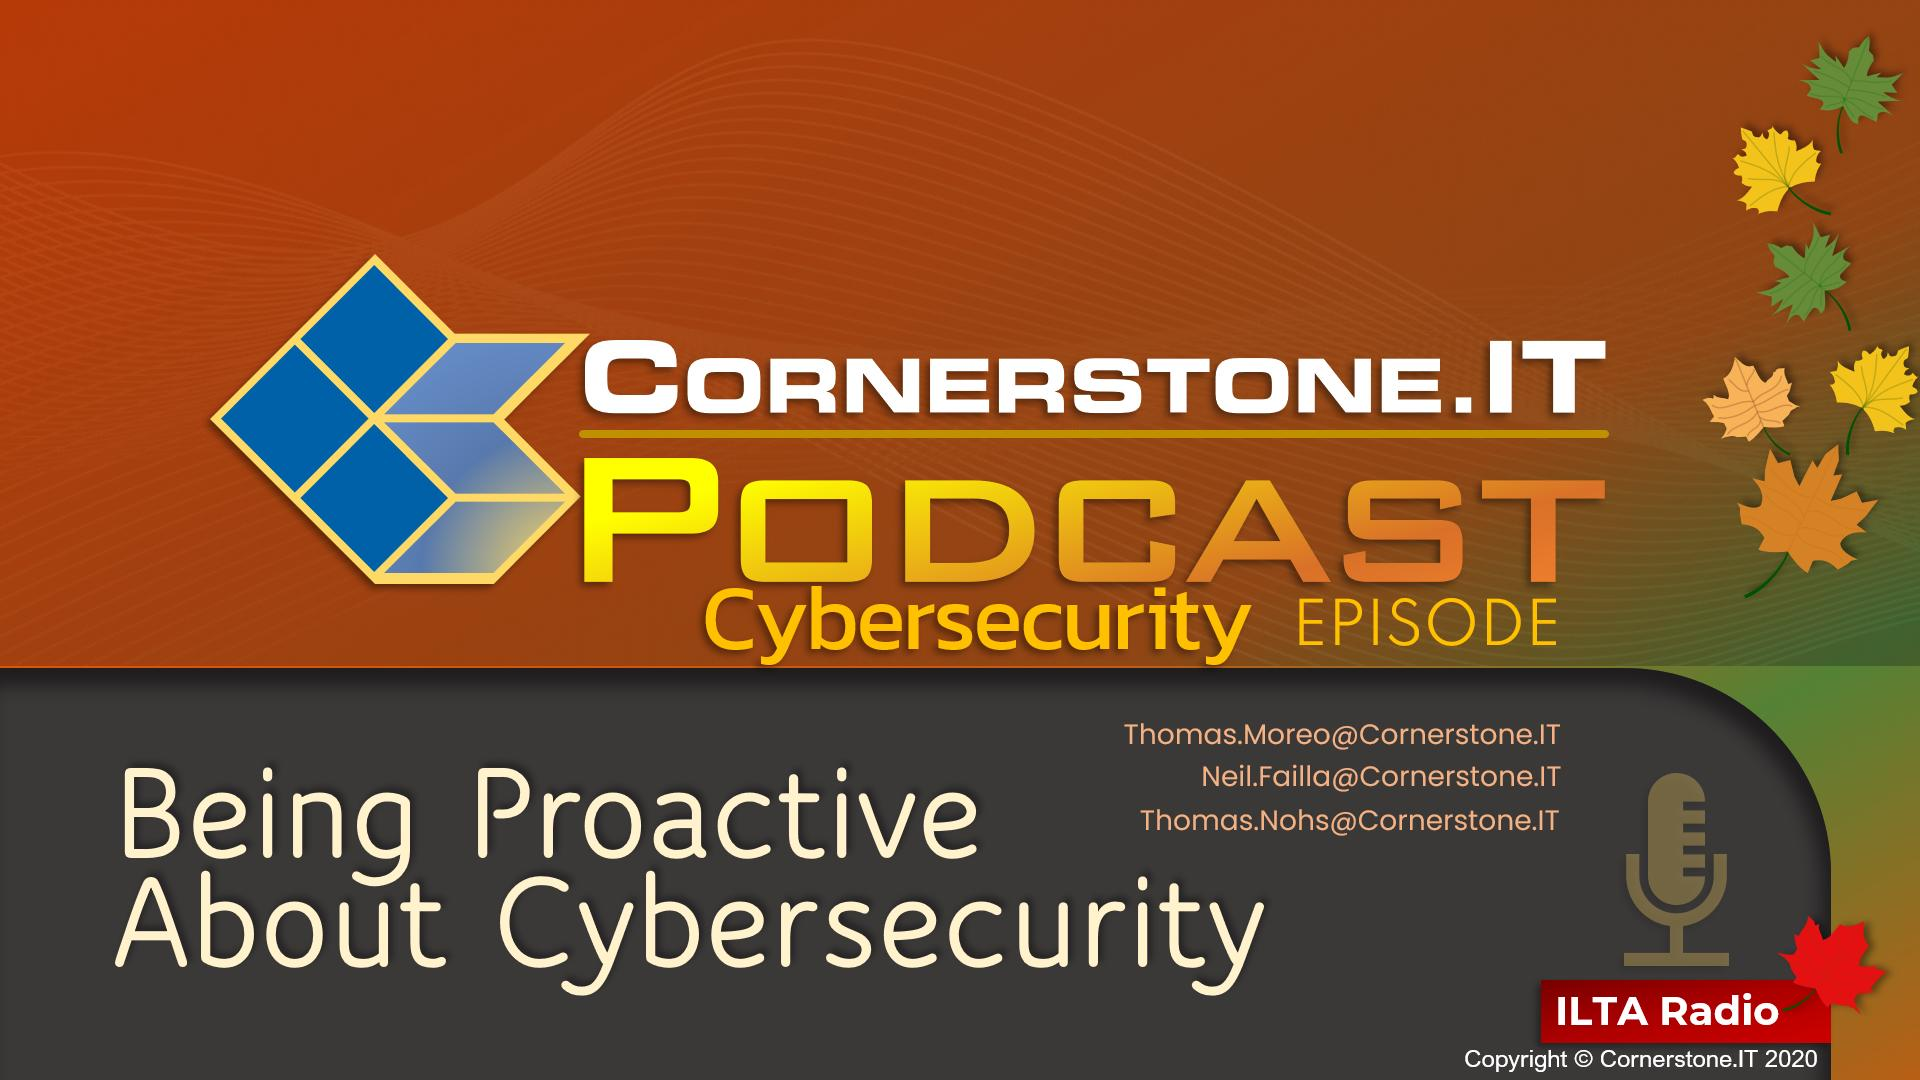 Being Proactive About Cybersecurity